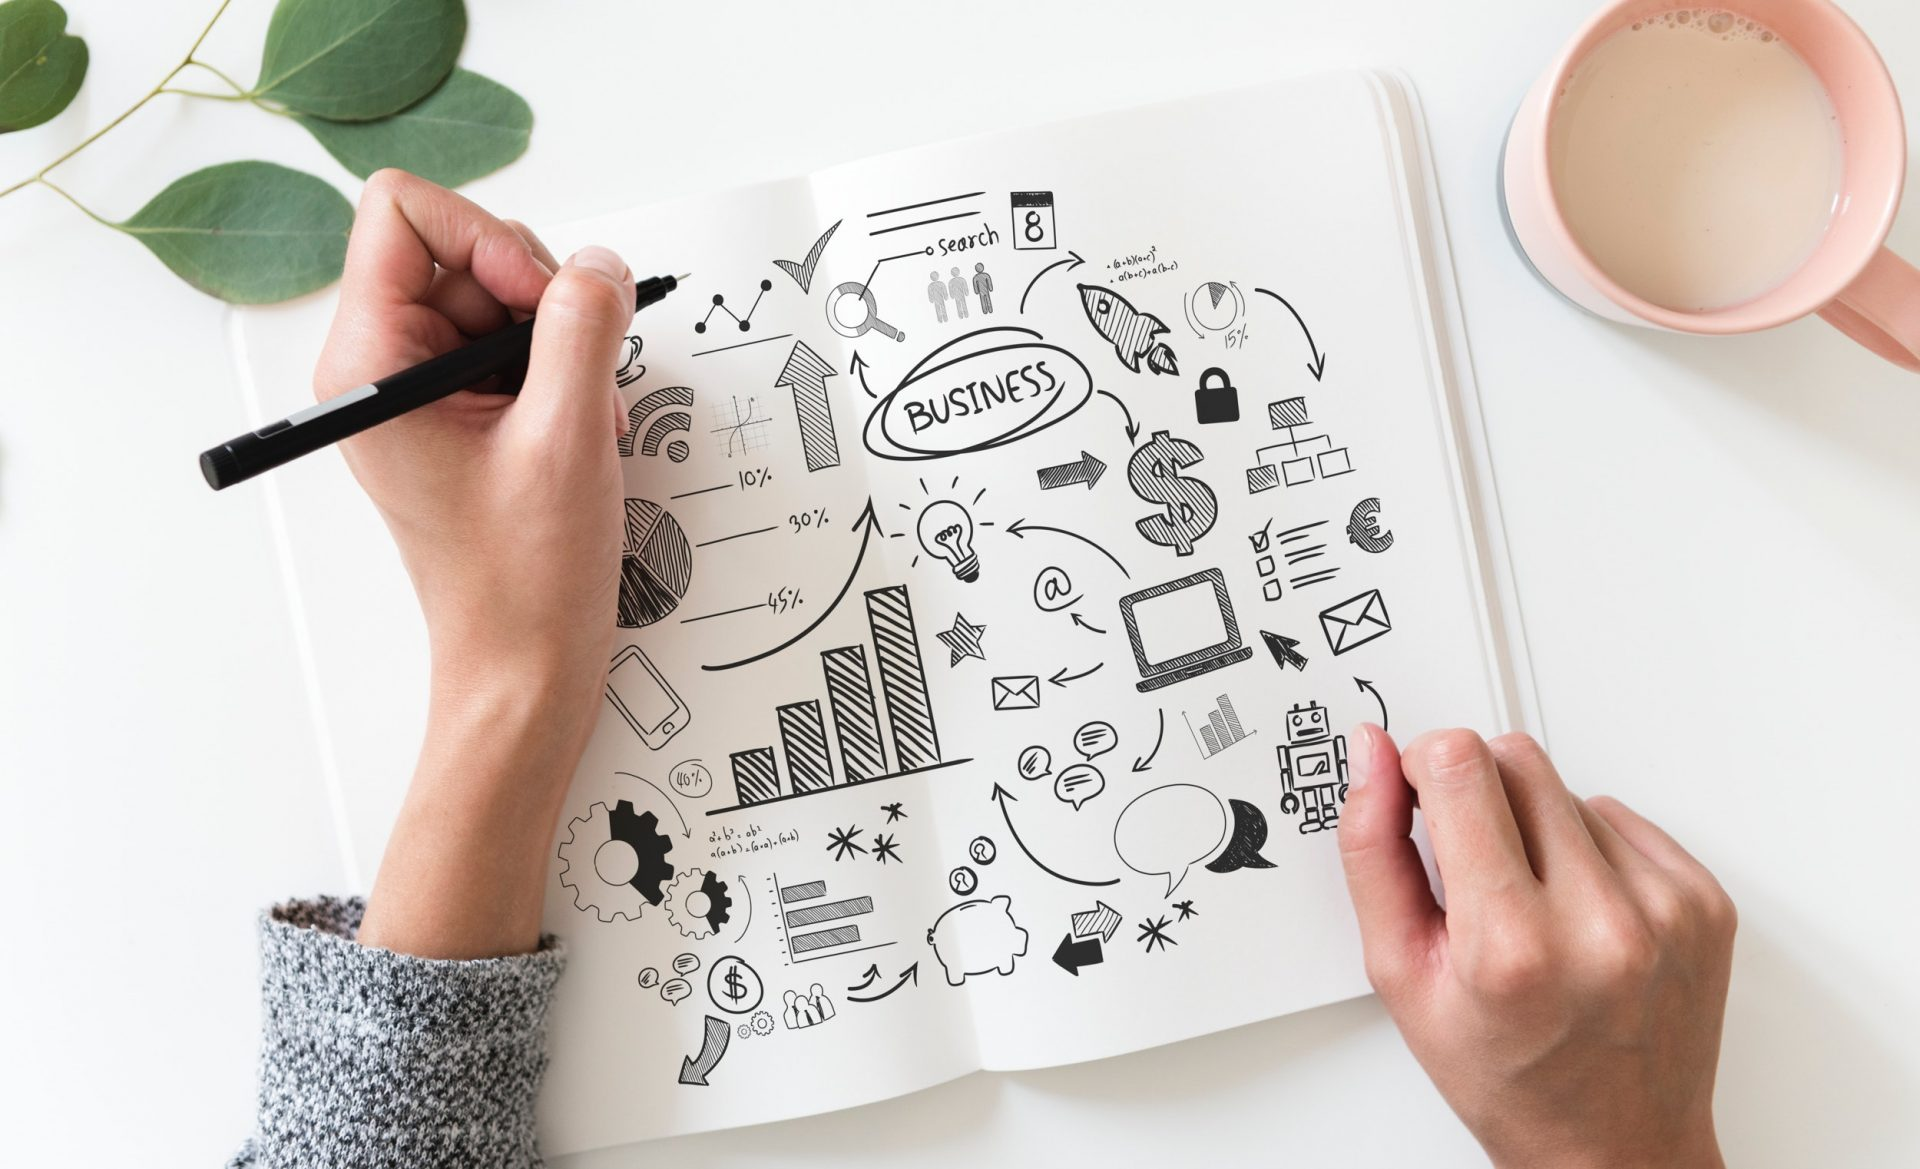 4 important steps to business growth